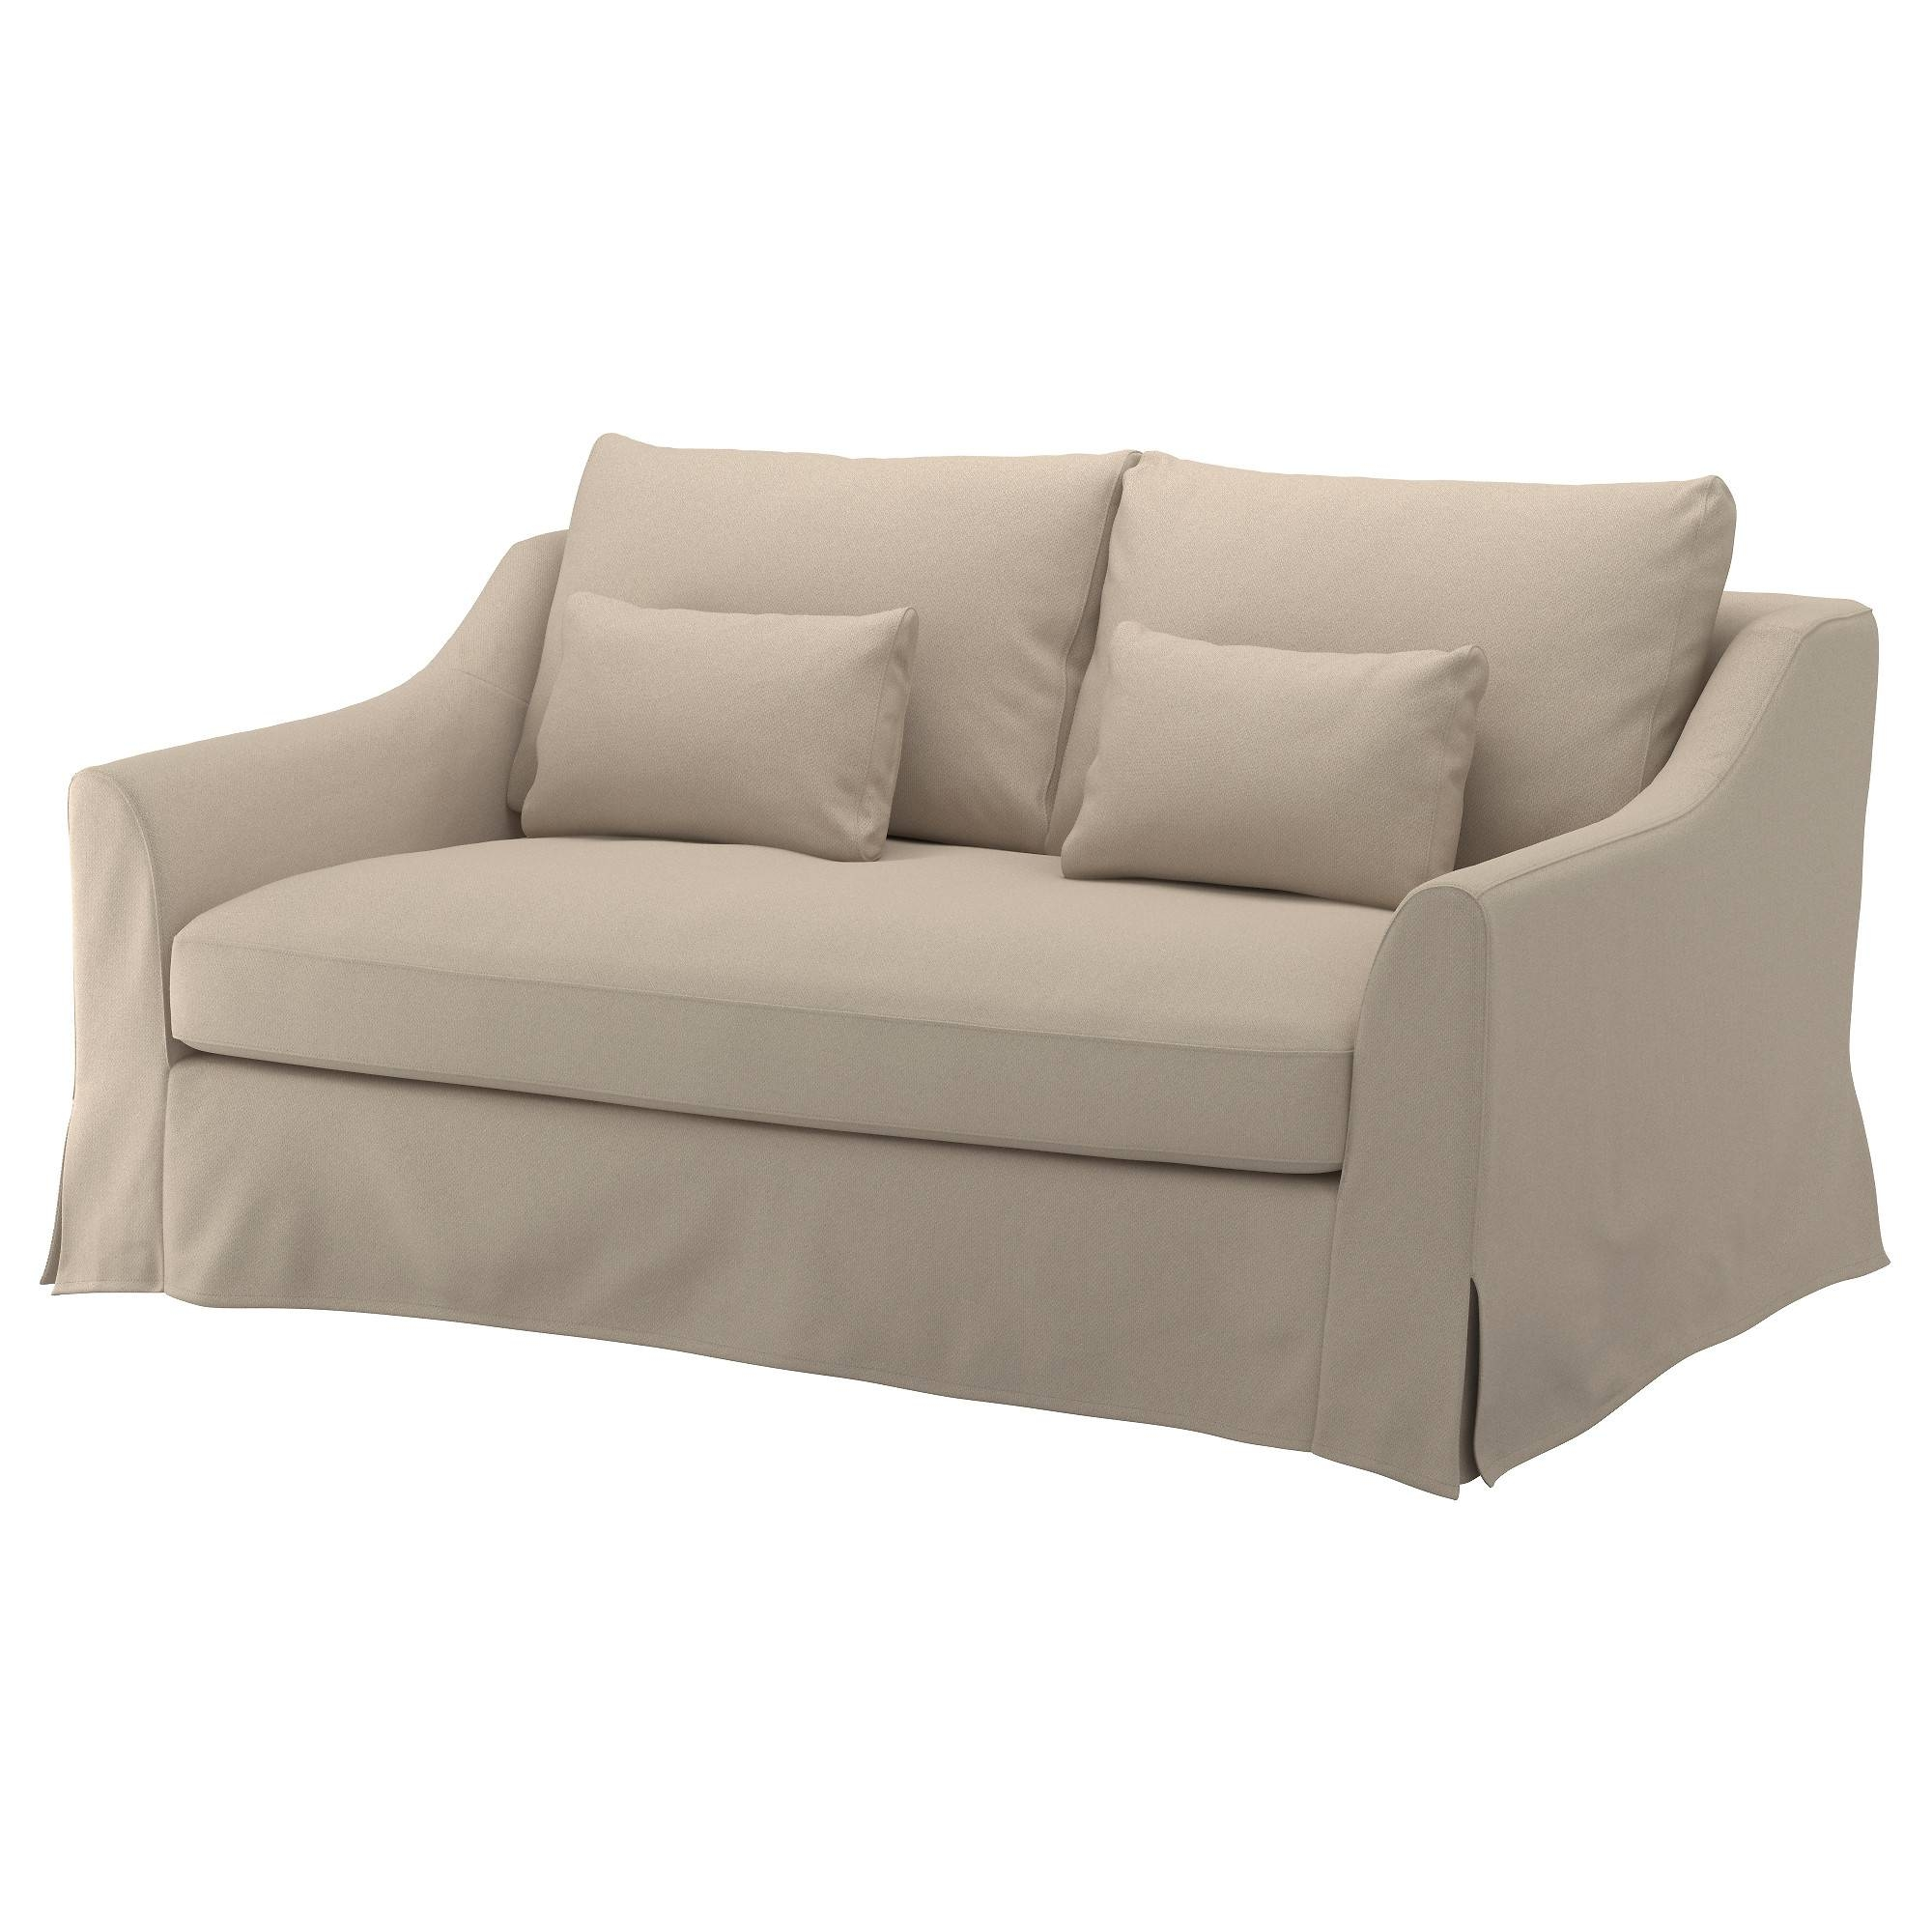 Fabric Sofas - Modern & Contemporary - Ikea regarding One Cushion Sofas (Image 5 of 30)